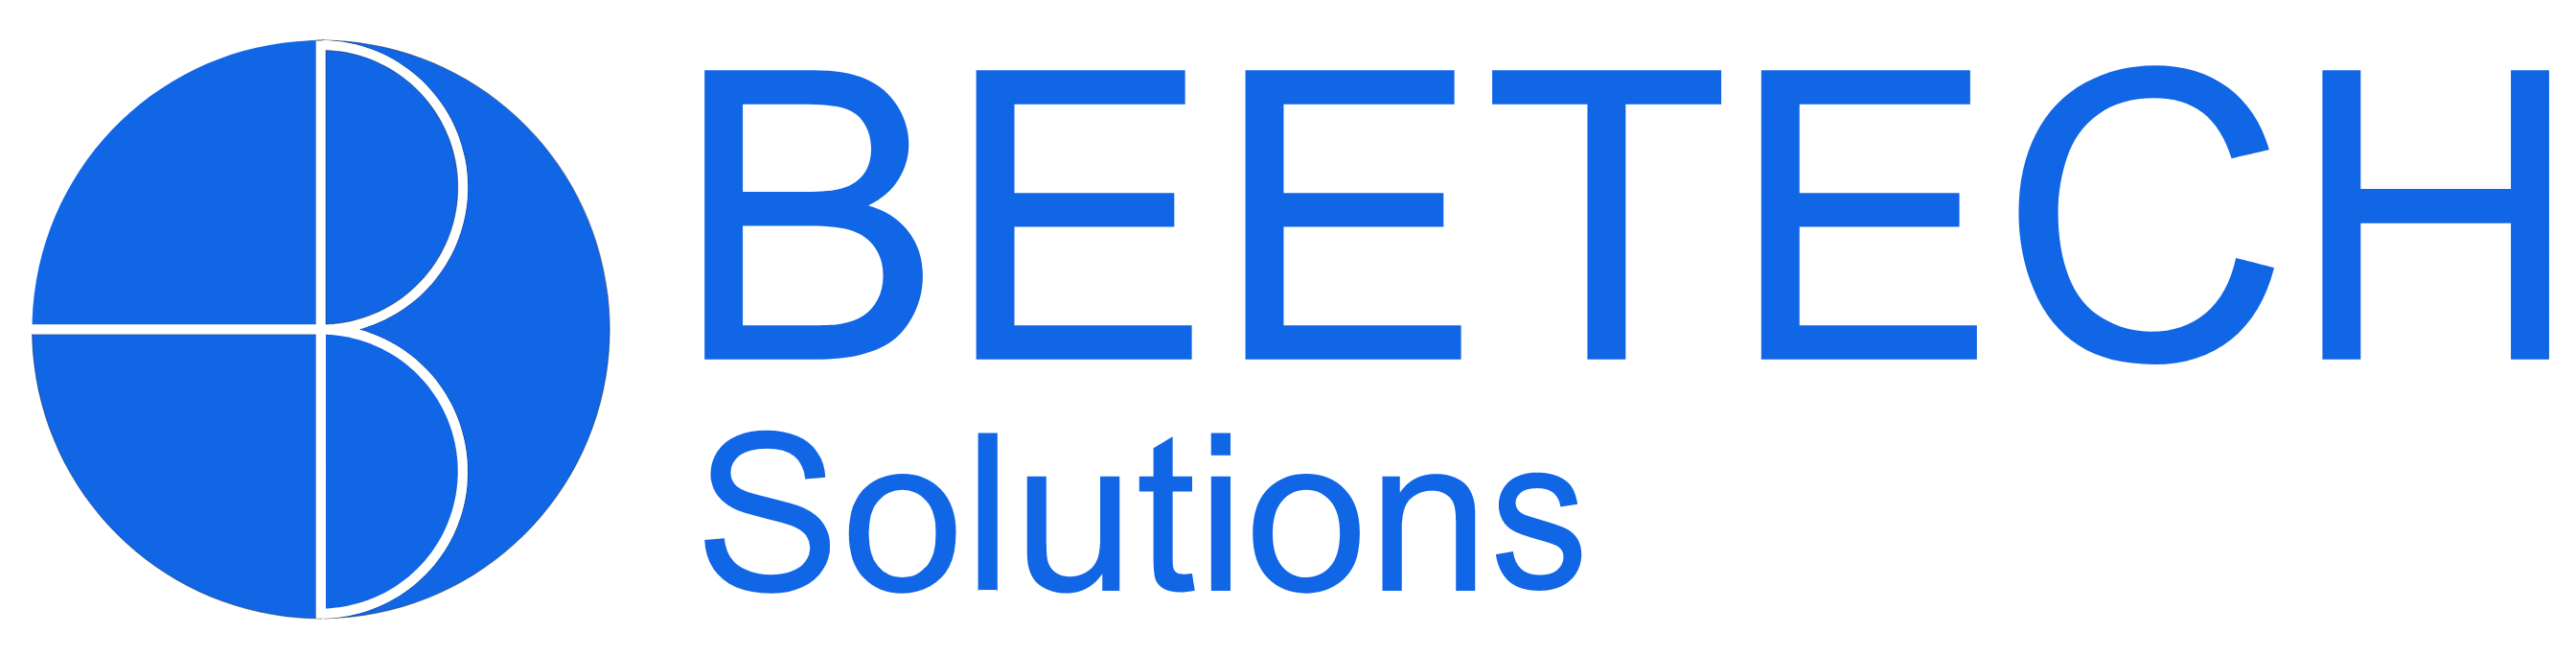 Beetech Solutions